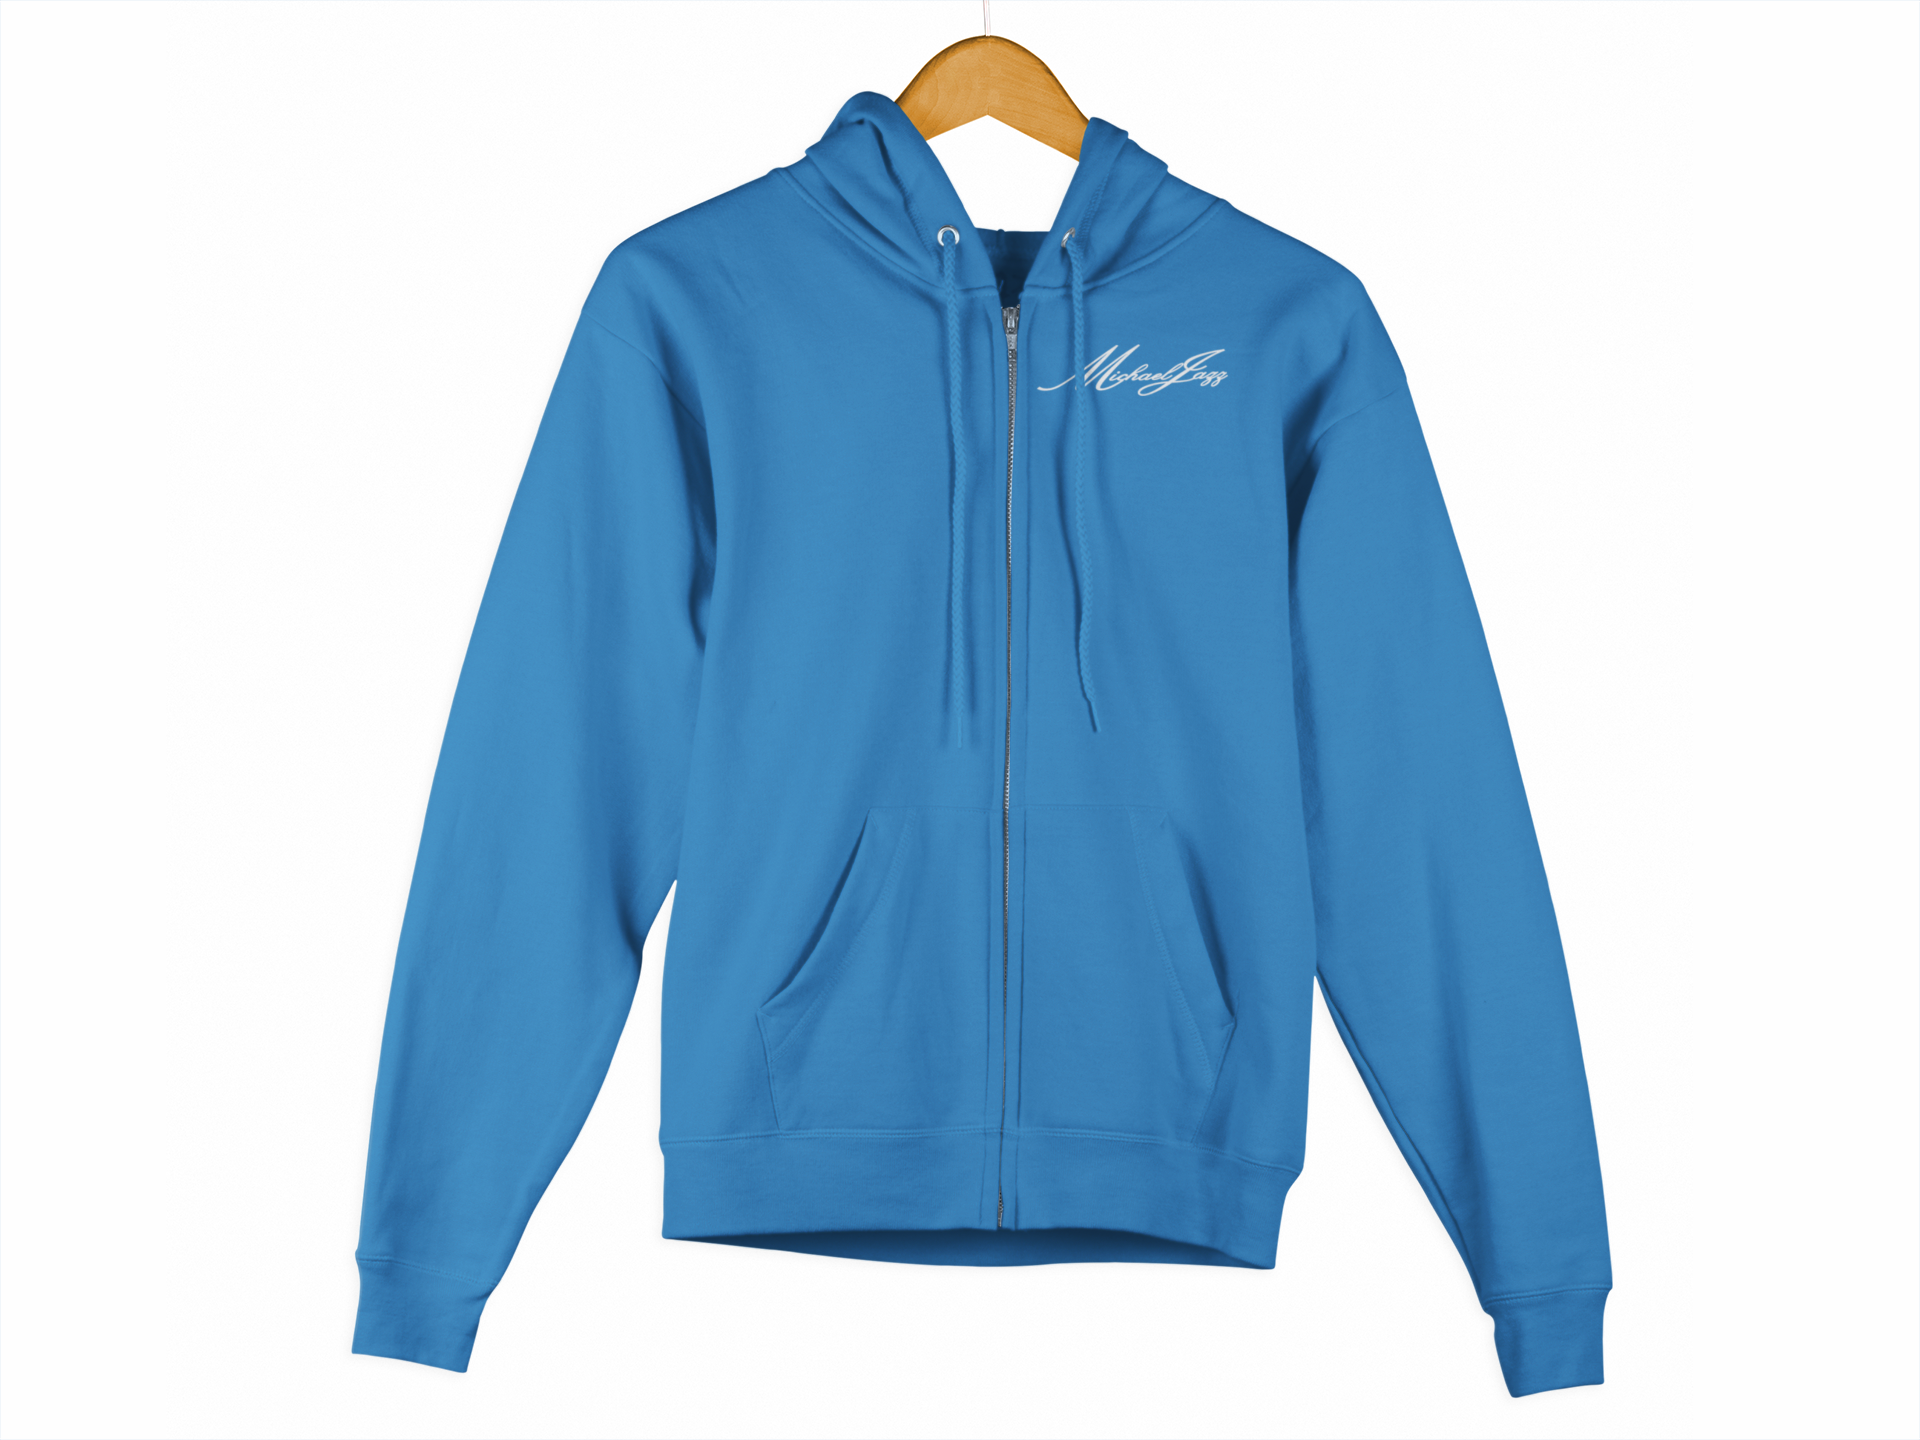 Michaeljazz Classic Signature Womens Zip-Up Hoodies - michaeljazz.ca - Michaeljazz Feel Good Lifestyle Brand